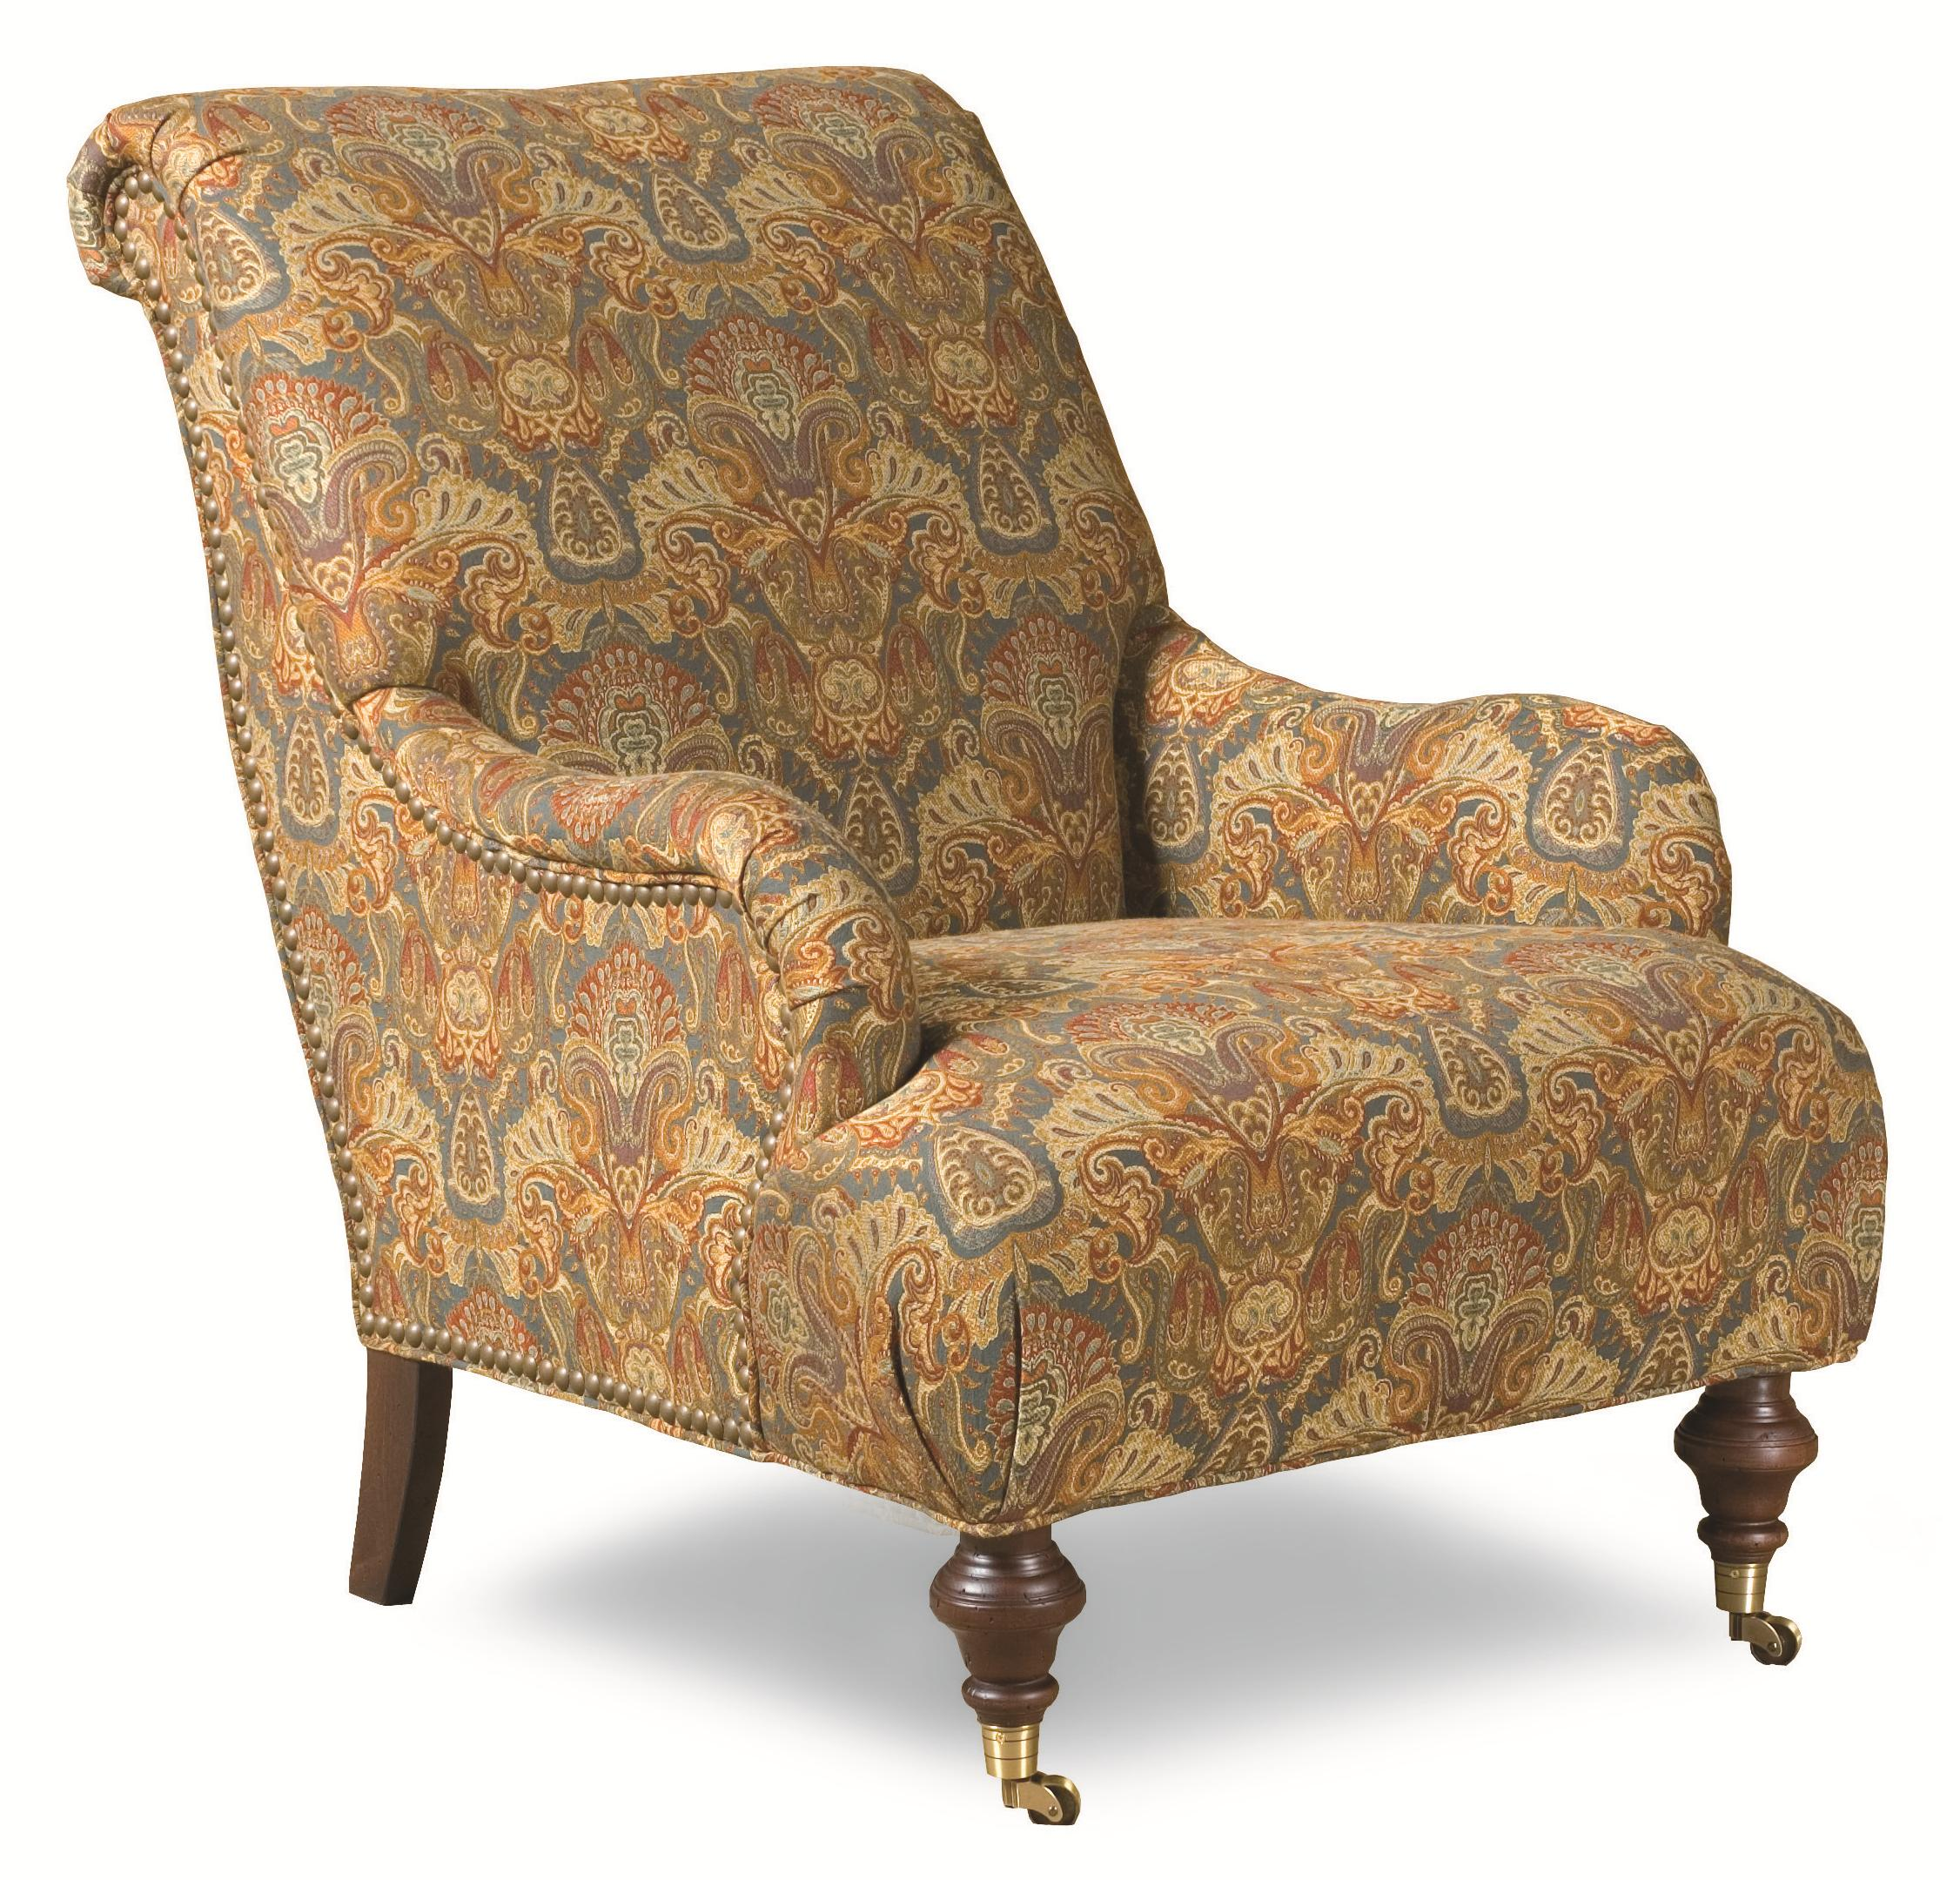 Huntington House 7372 Traditional Roll Back Chair with English